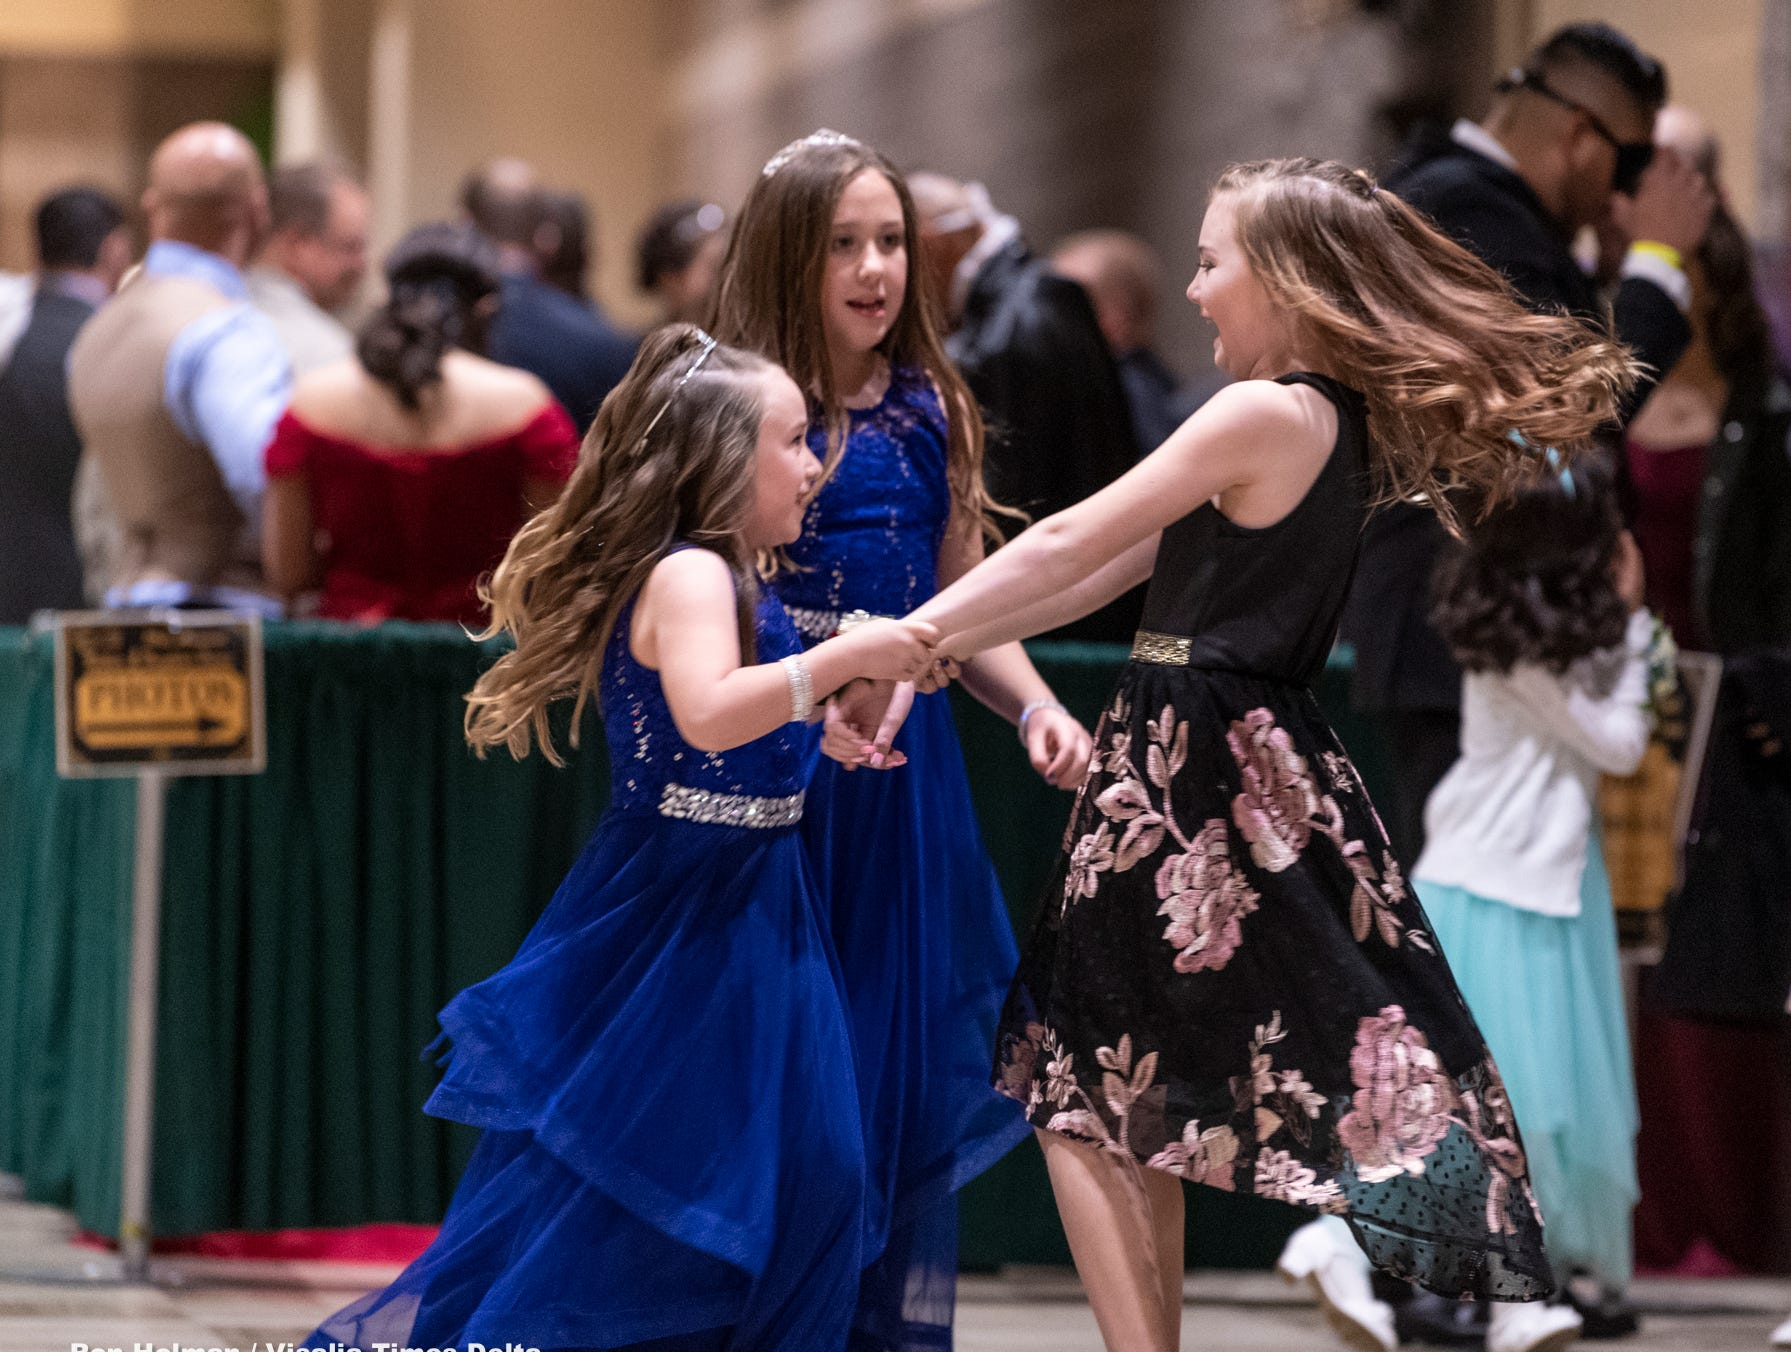 """Corrina Wilson, 7, left, Brooklyn Robles, 10, and Brooke Knauter, 9, dance in anticipation of the annual Father-Daughter Dance at the Visalia Convention Center on Saturday, February 16, 2019. This year's theme was """"Masquerade Ball,"""" and included music, dancing and refreshments."""